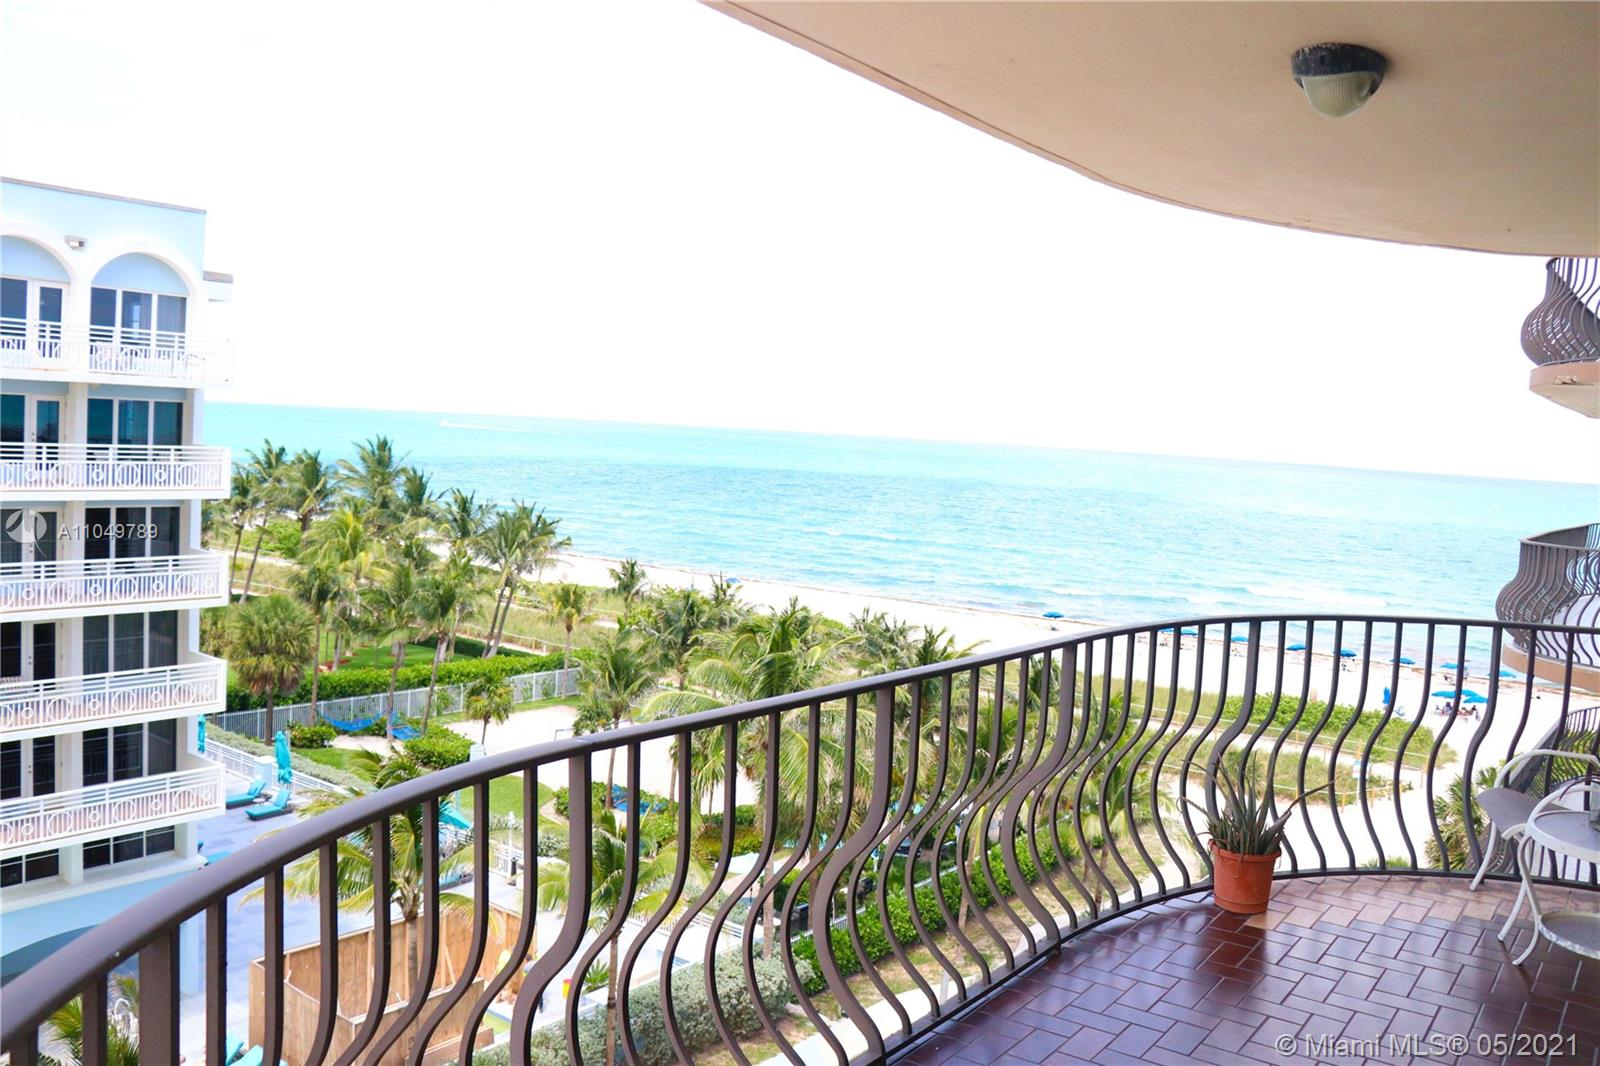 Beautiful beachfront property with an ocean view! Spacious 2/2 condo with a balcony and stainless steel appliances. One-of-a-kind location to make your own! Relax in the pool, hot tub, or take long walks on the beach. Minutes to Bal Harbour shops, restaurants, and supermarkets. Walking distance to tennis courts. 24-hour security, fitness center, recreation room, BBQ area with picnic tables outdoors perfect for entertaining.